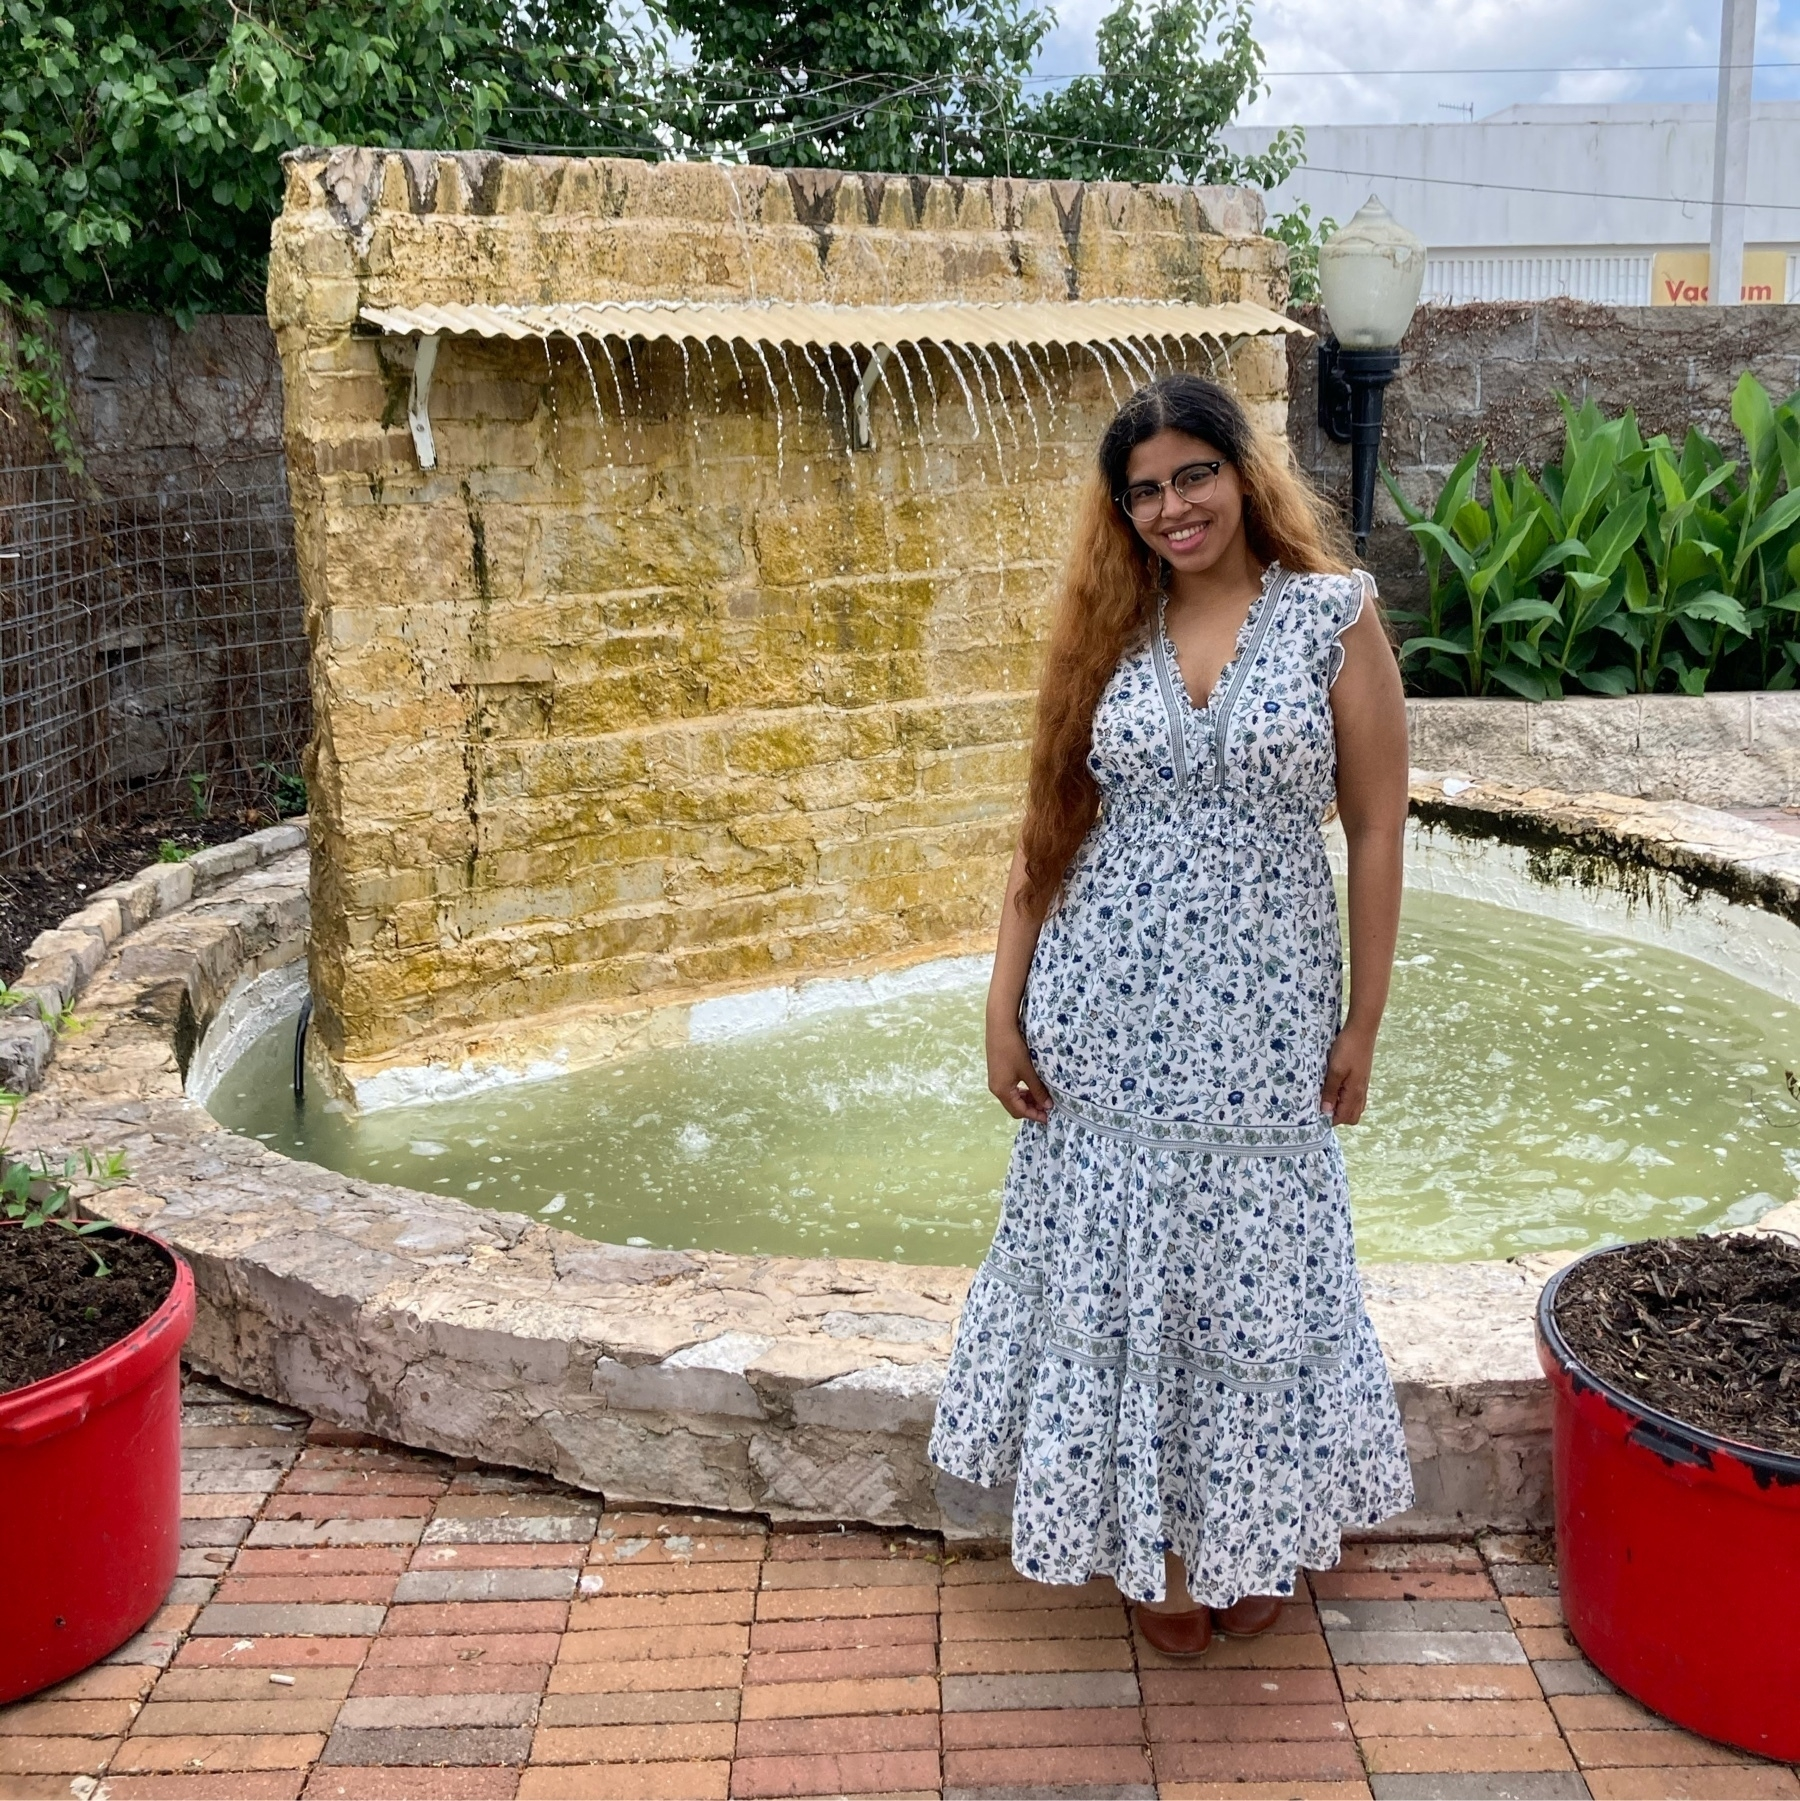 Me in a dress standing in front of a waterfall